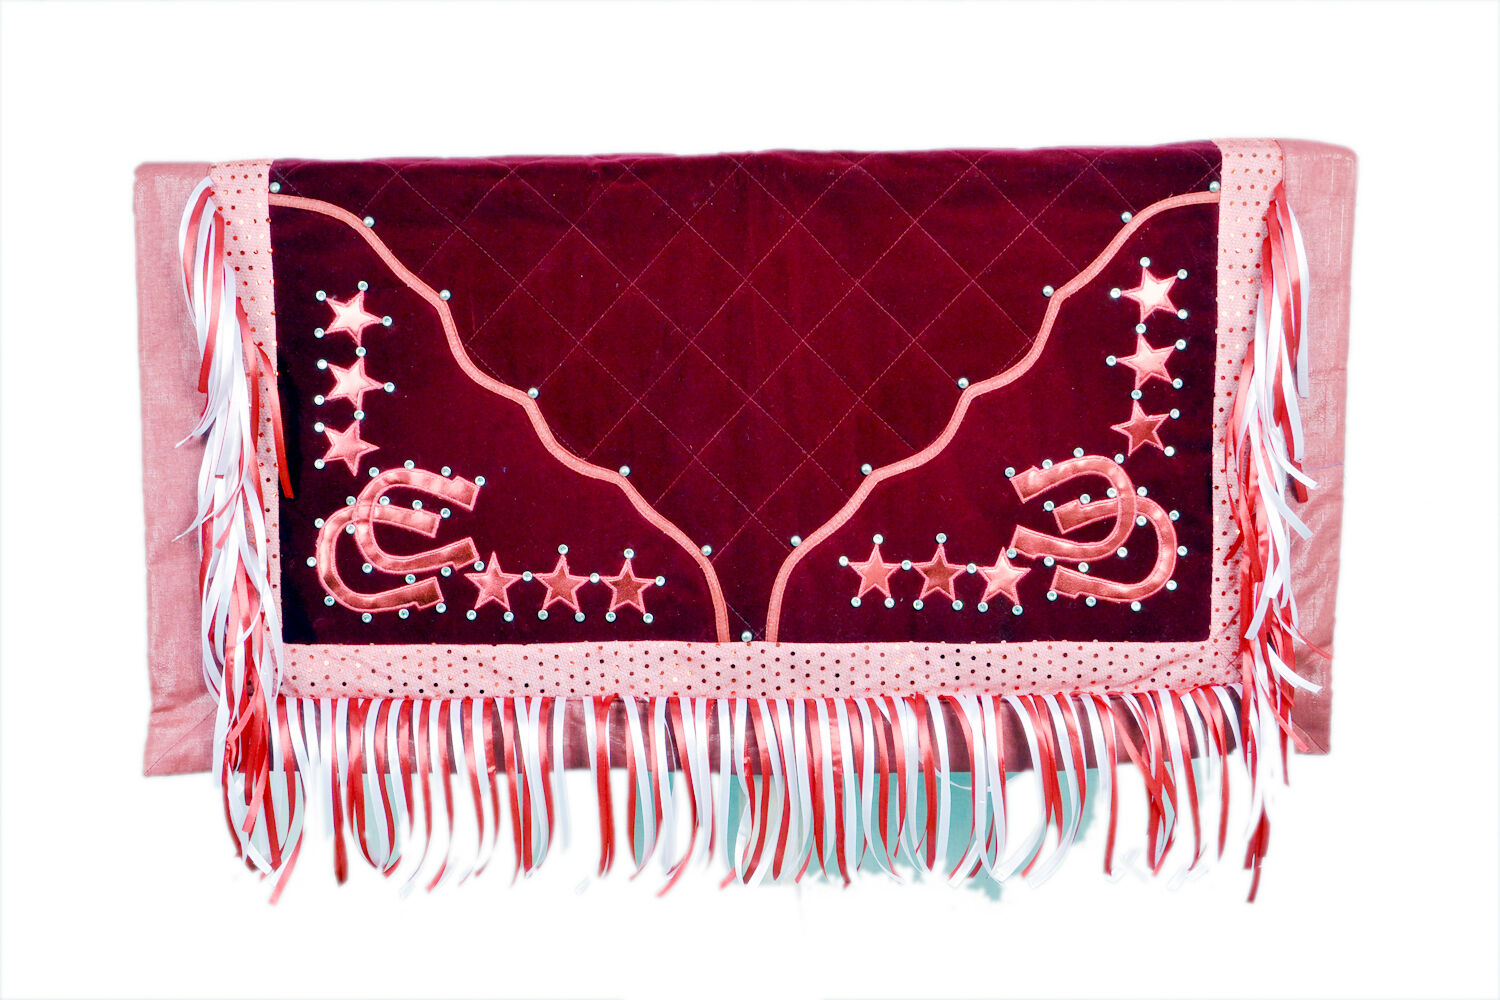 Western  Barrel Racer Rodeo Show Saddle Pad   Maroon  buy cheap